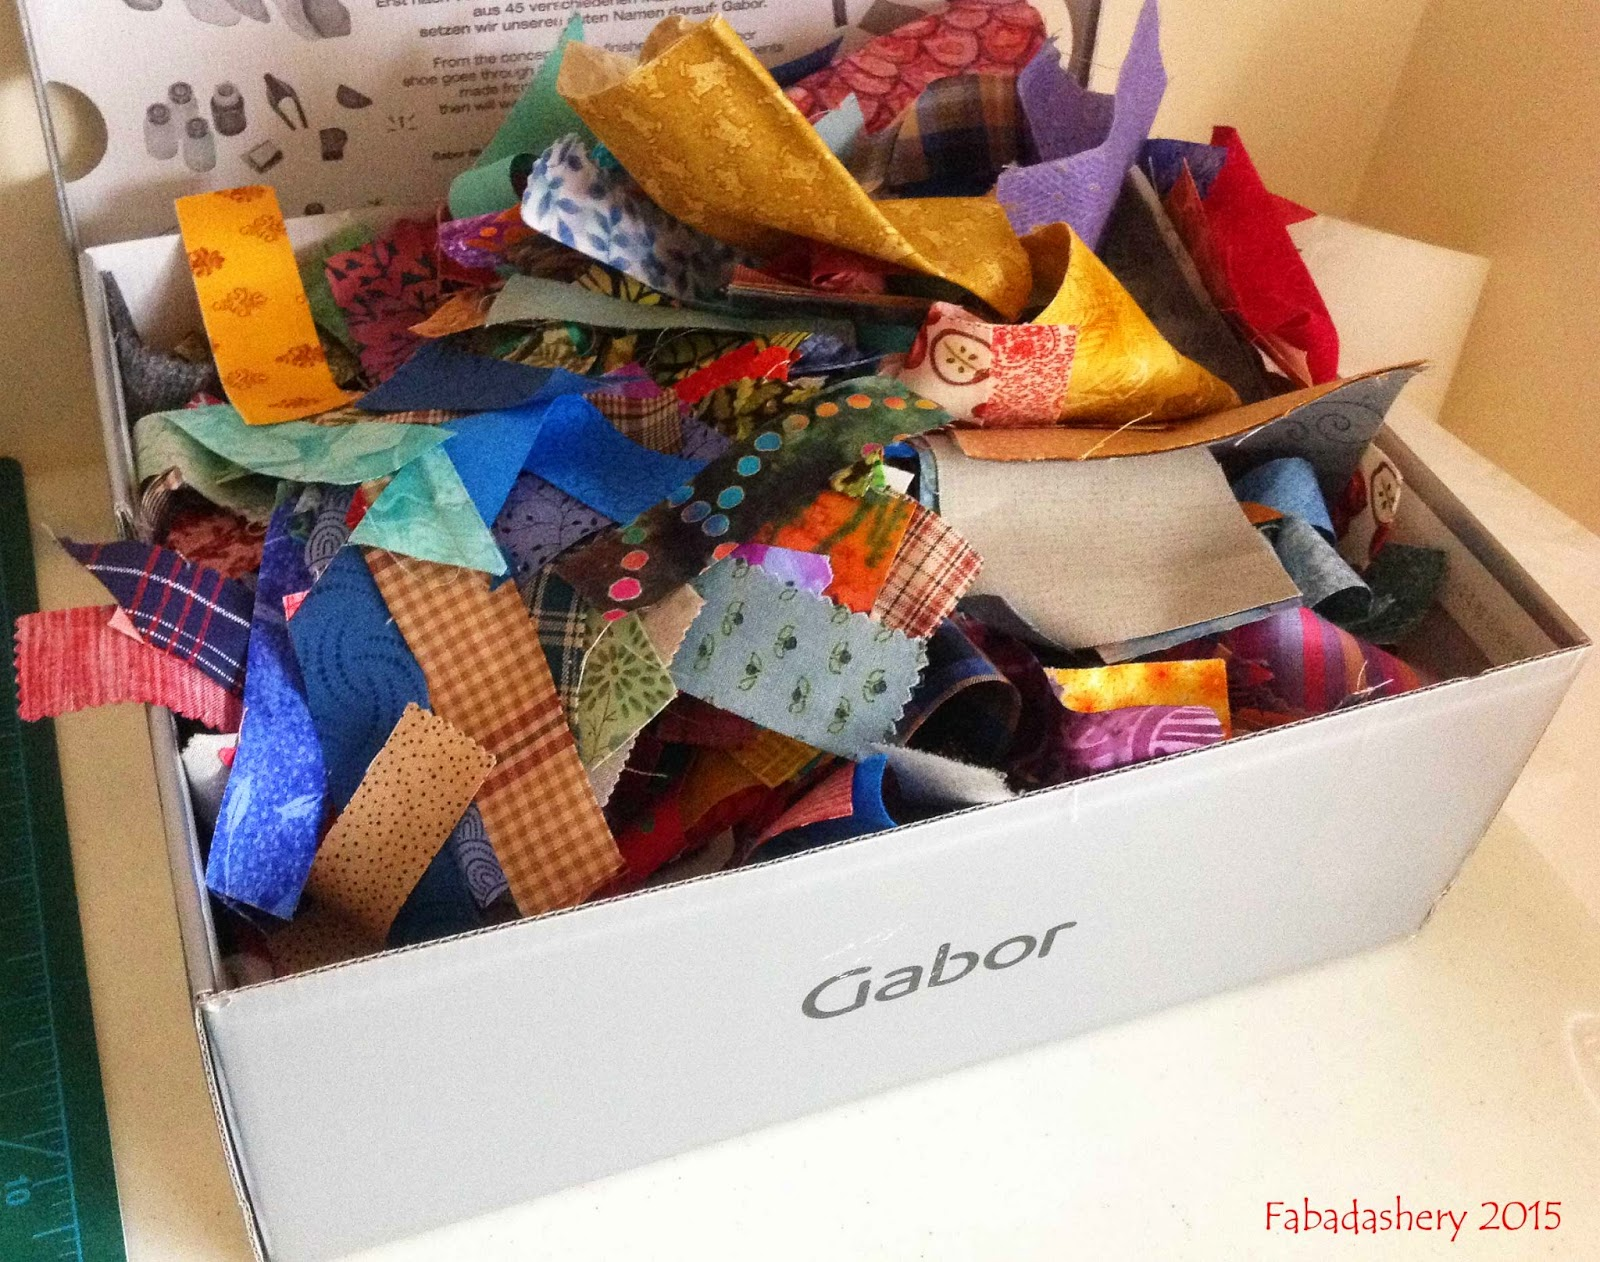 Box of fabric scraps